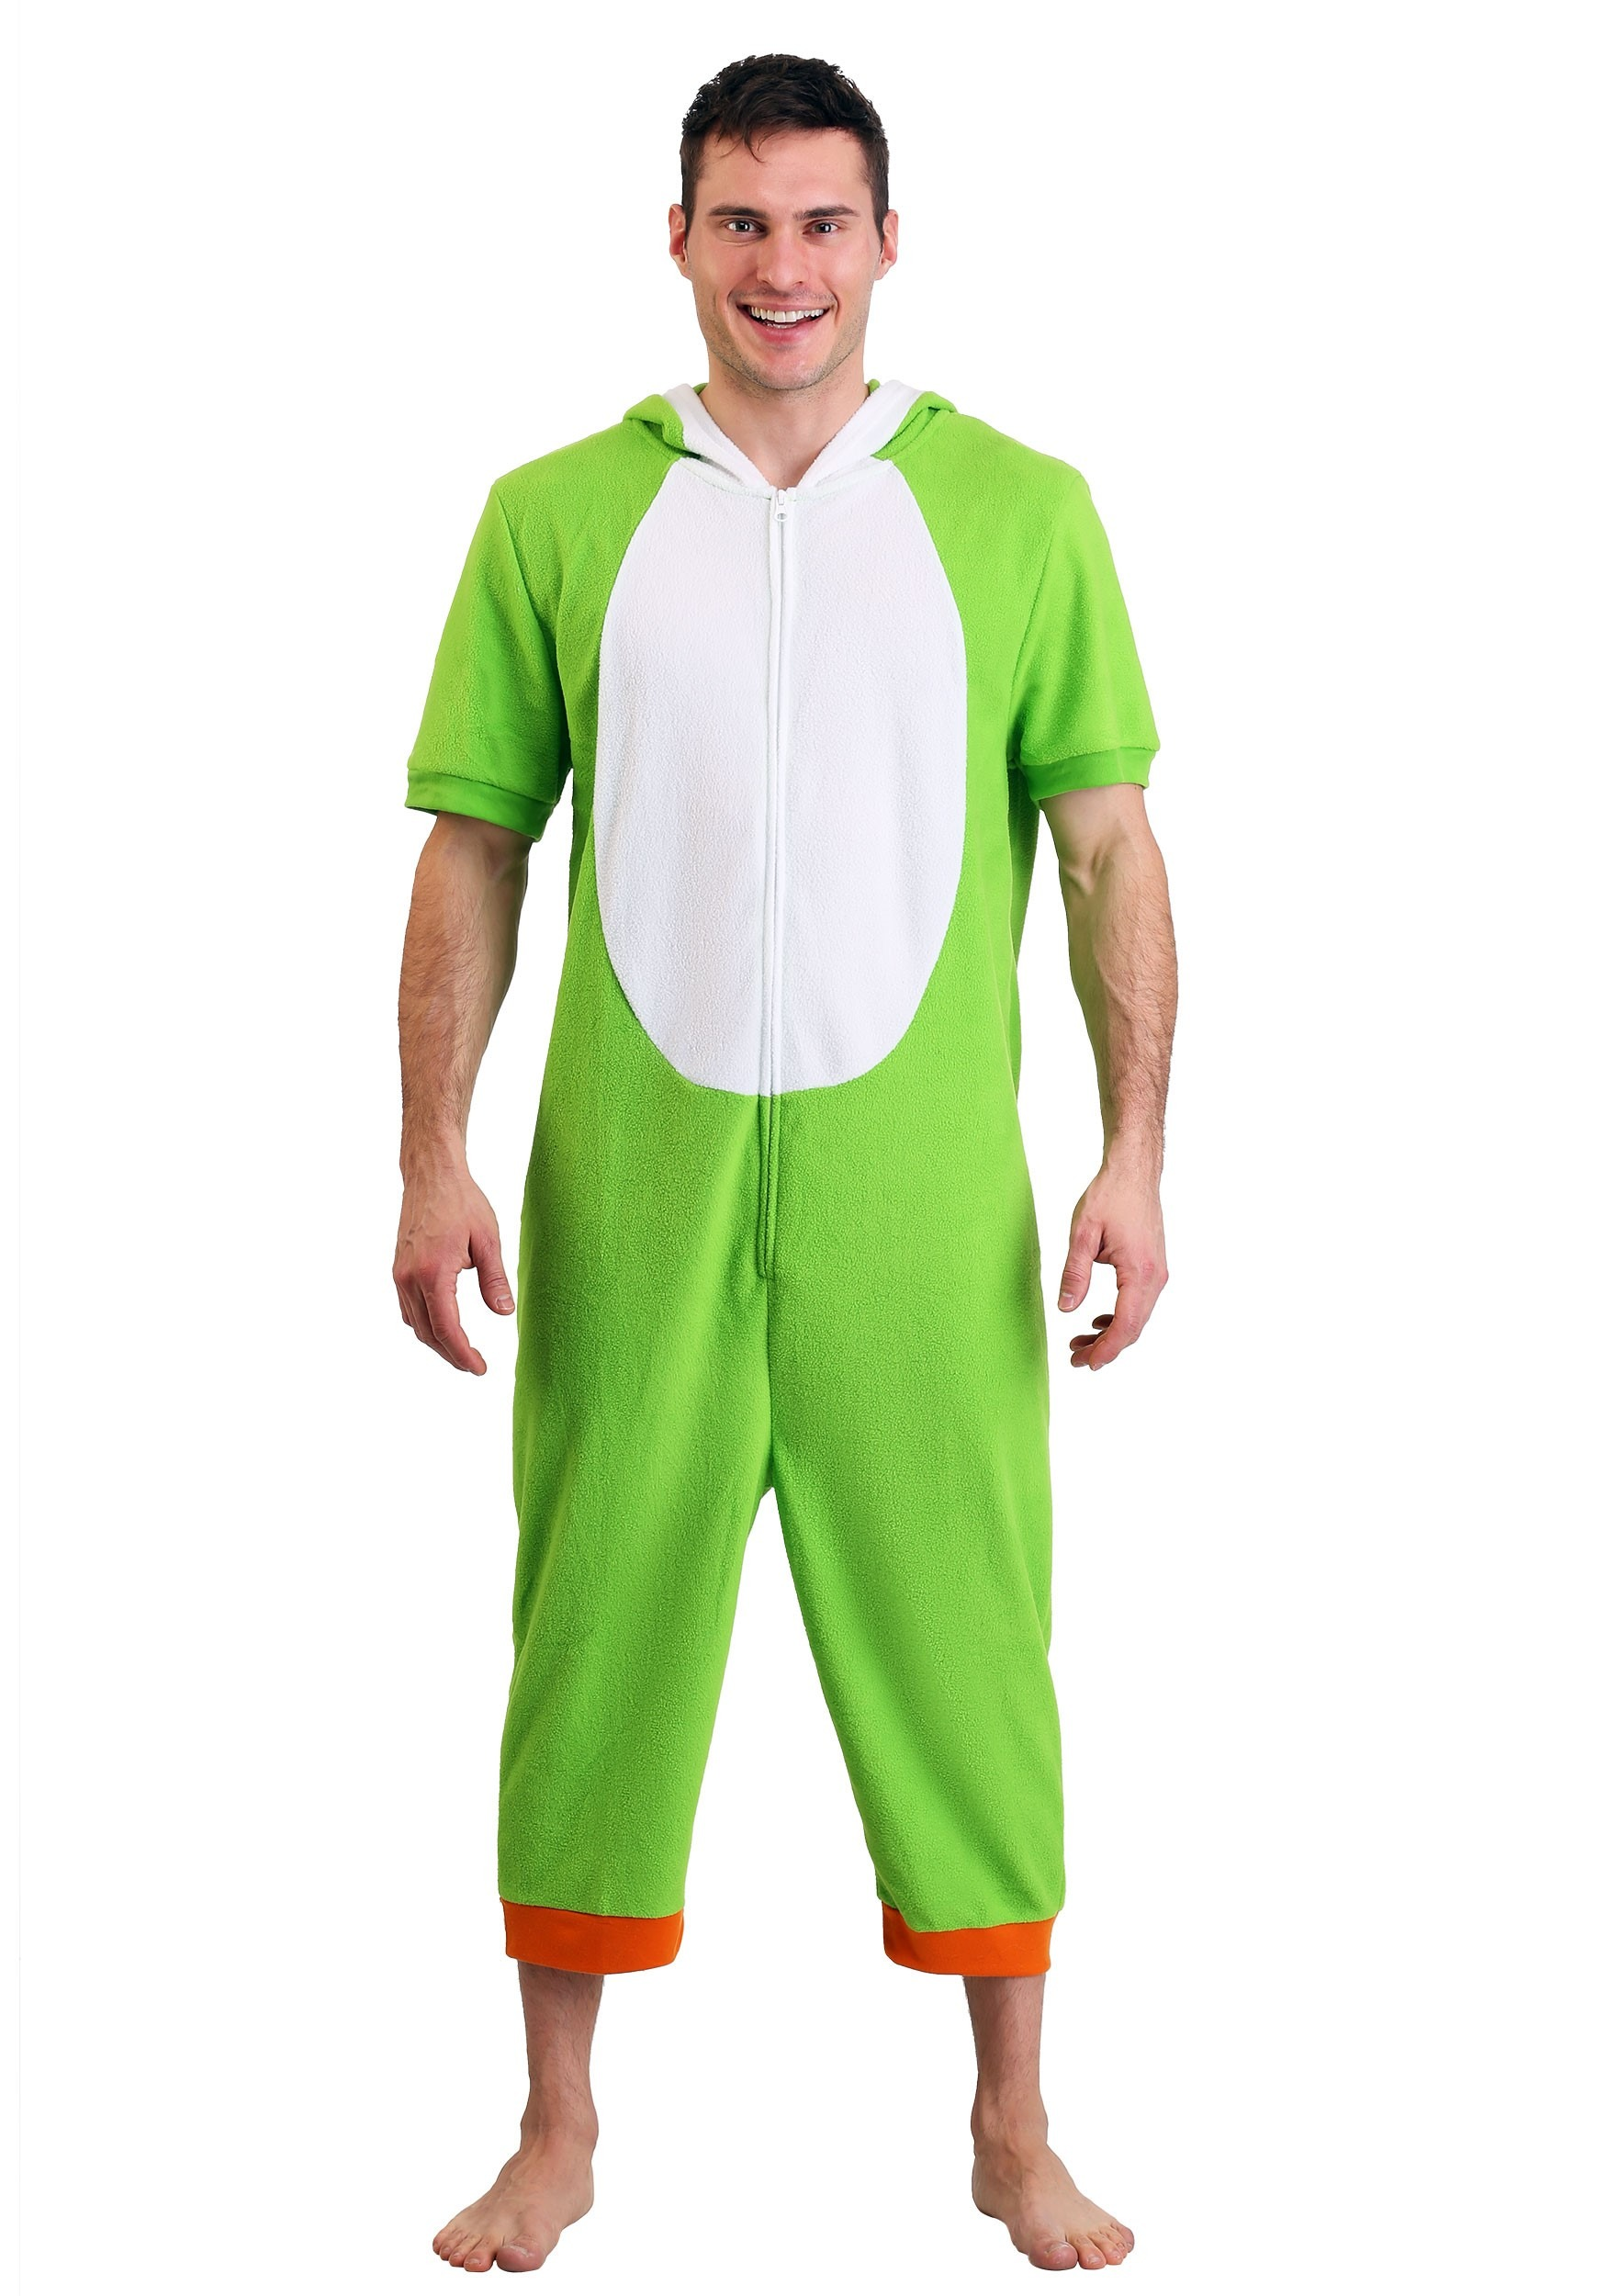 Yoshi Cosplay Romper For Men